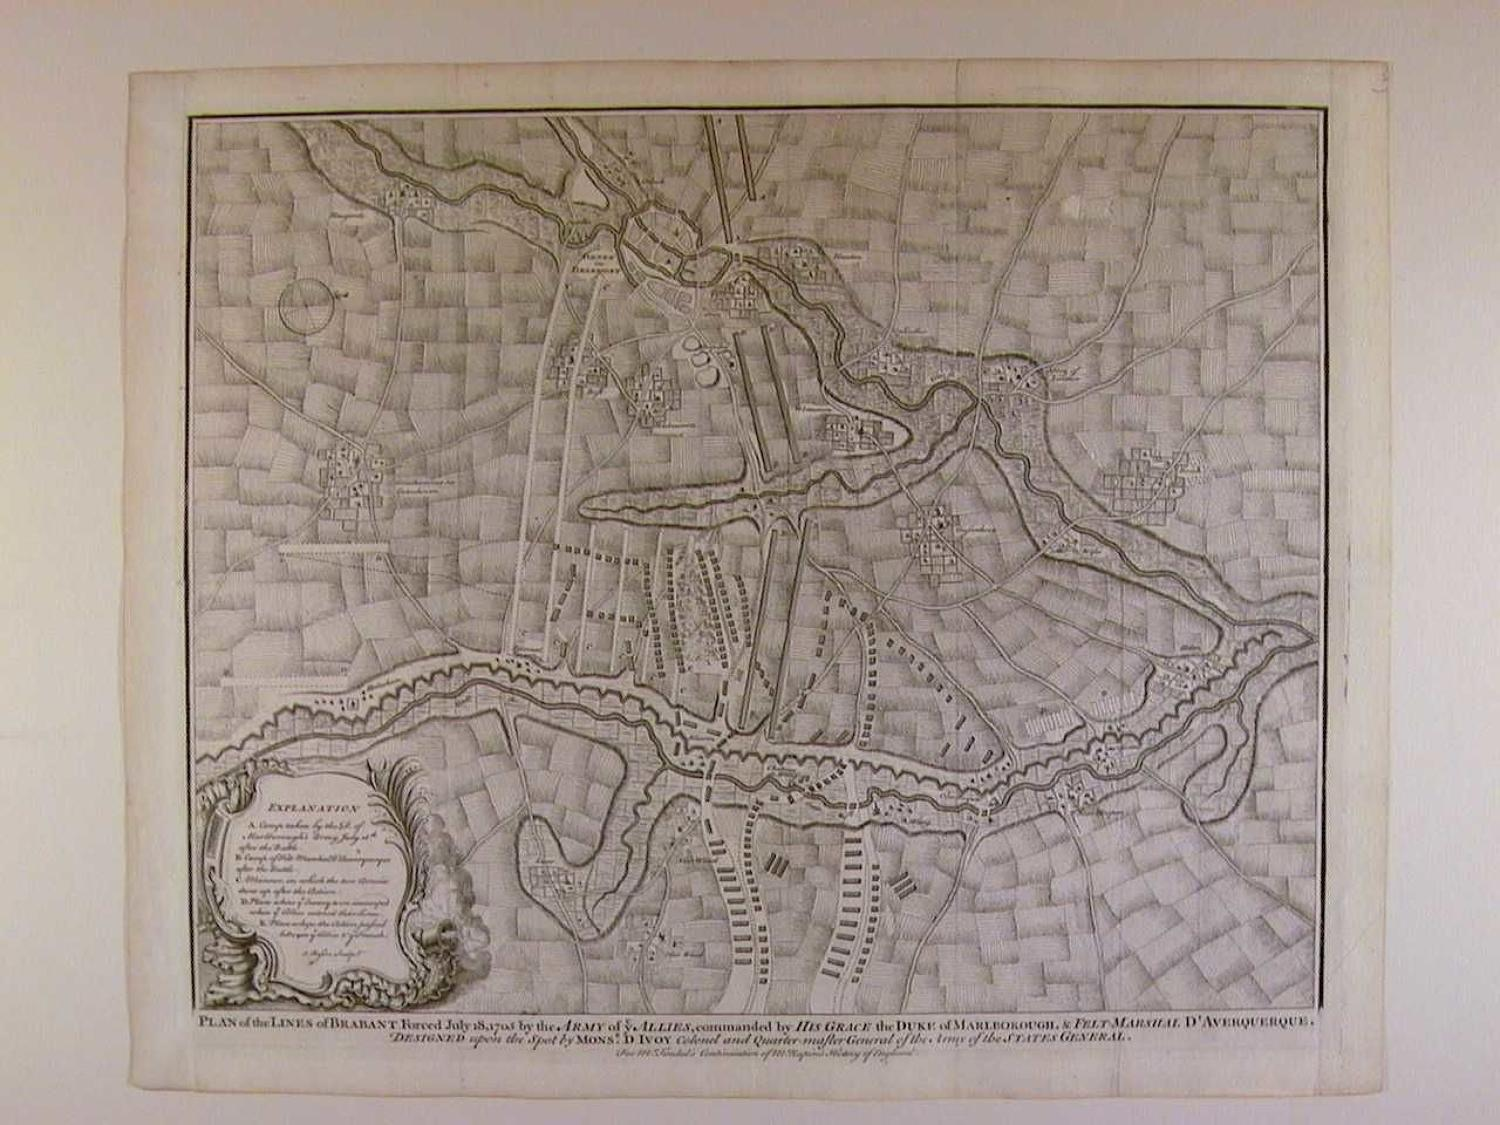 Plan of the Lines of Brabant Forced July 18, 1705 by the Army of the A by Isaac Basire